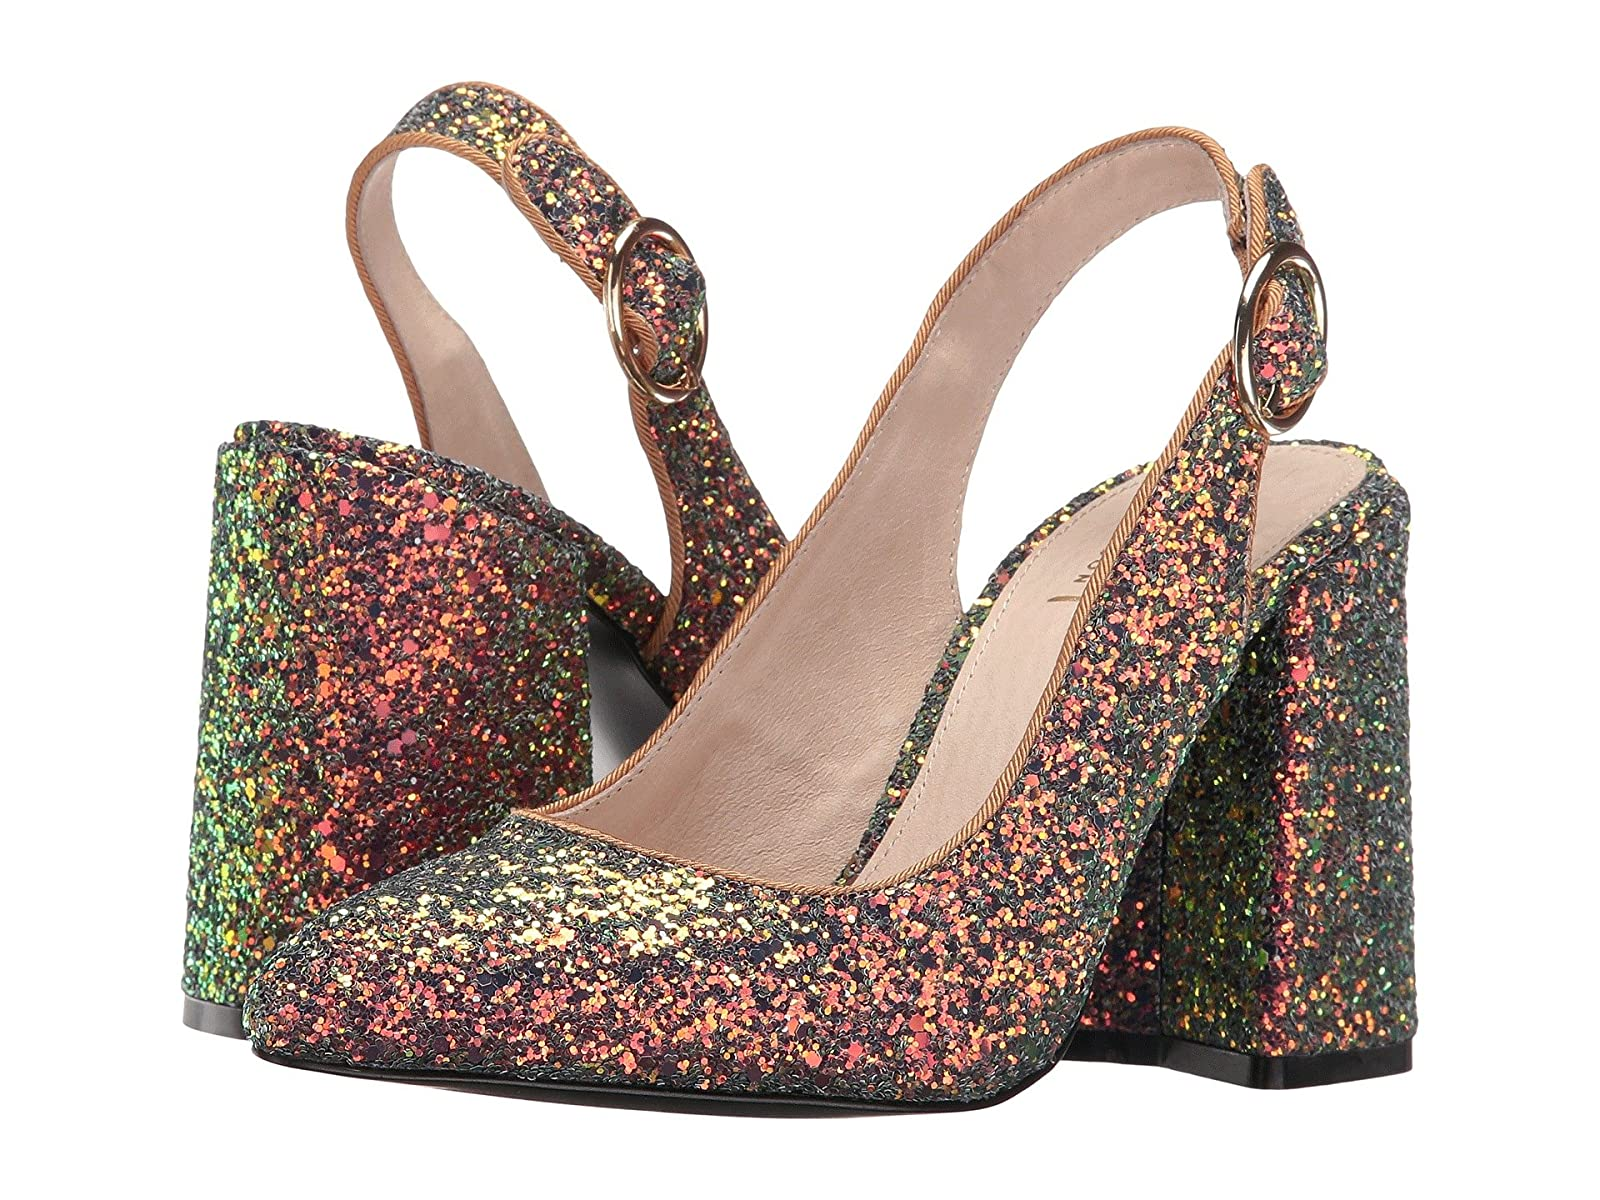 Shellys London ChesterCheap and distinctive eye-catching shoes